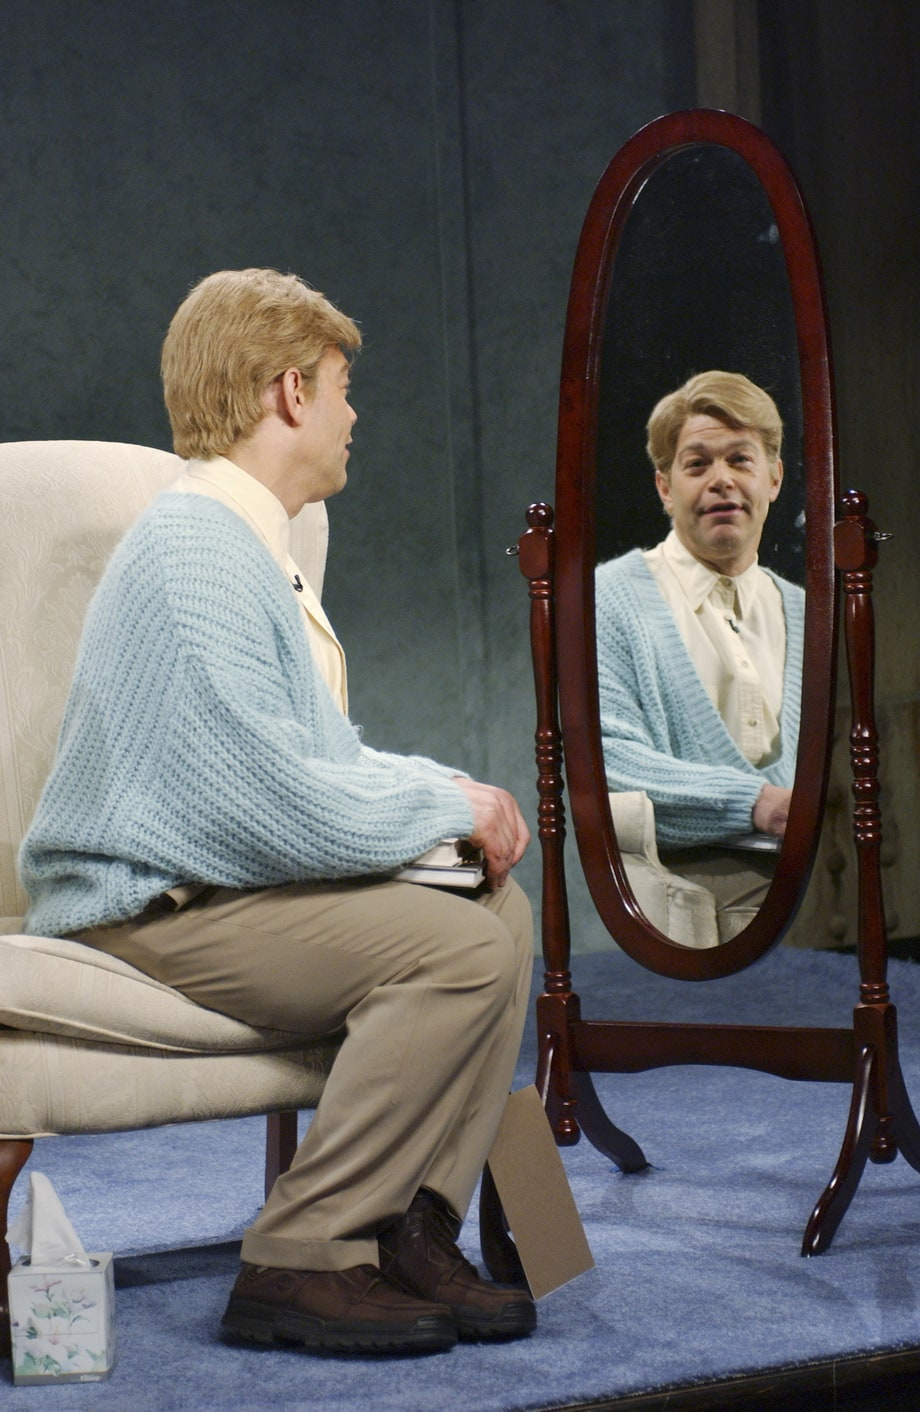 rs-186124-StuartSmalley138442085